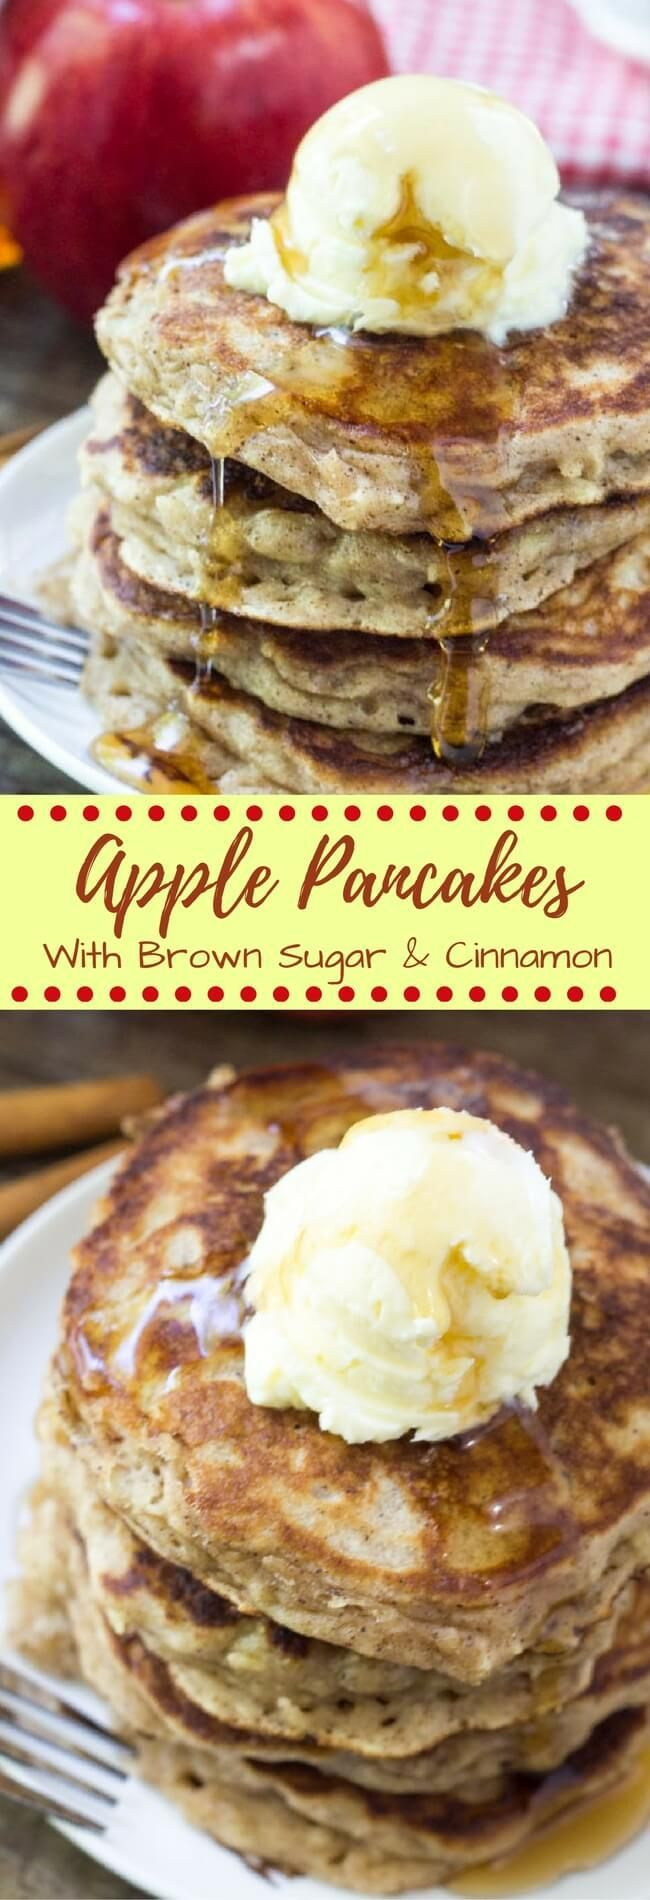 These apple pancakes are light & fluffy like your favorite buttermilk pancake recipe. Then they're filled with cinnamon and brown sugar - so they taste like apple pie in pancake form.Perfect for fall!